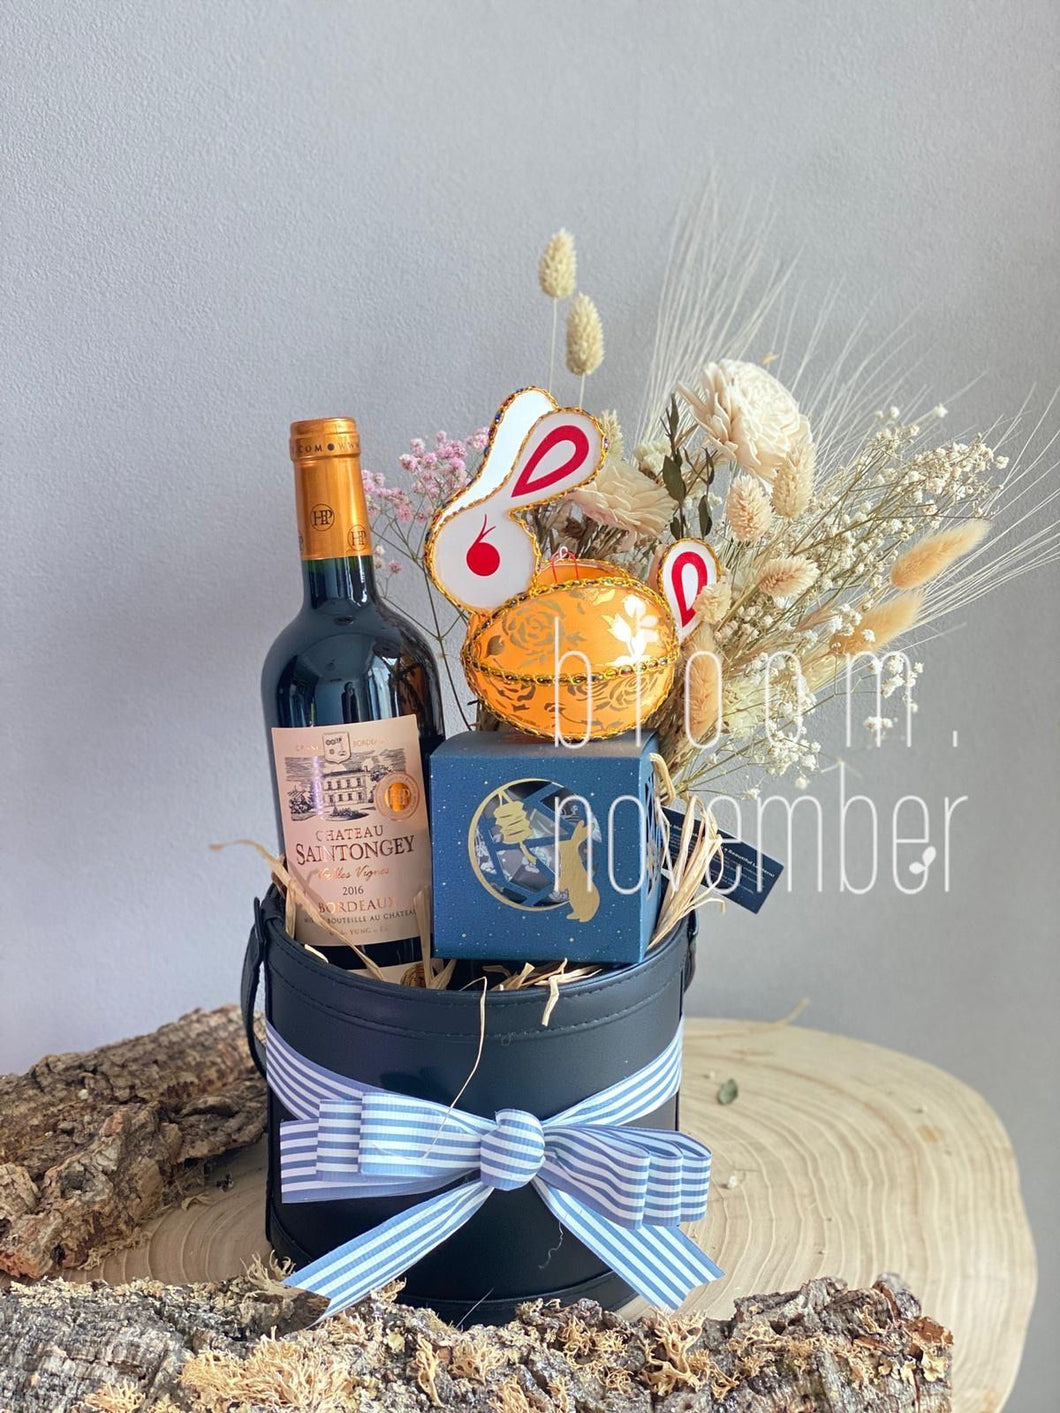 hamper 2020 wine choco bloom november 1299 hamper with schoggi meier mooncake & wine